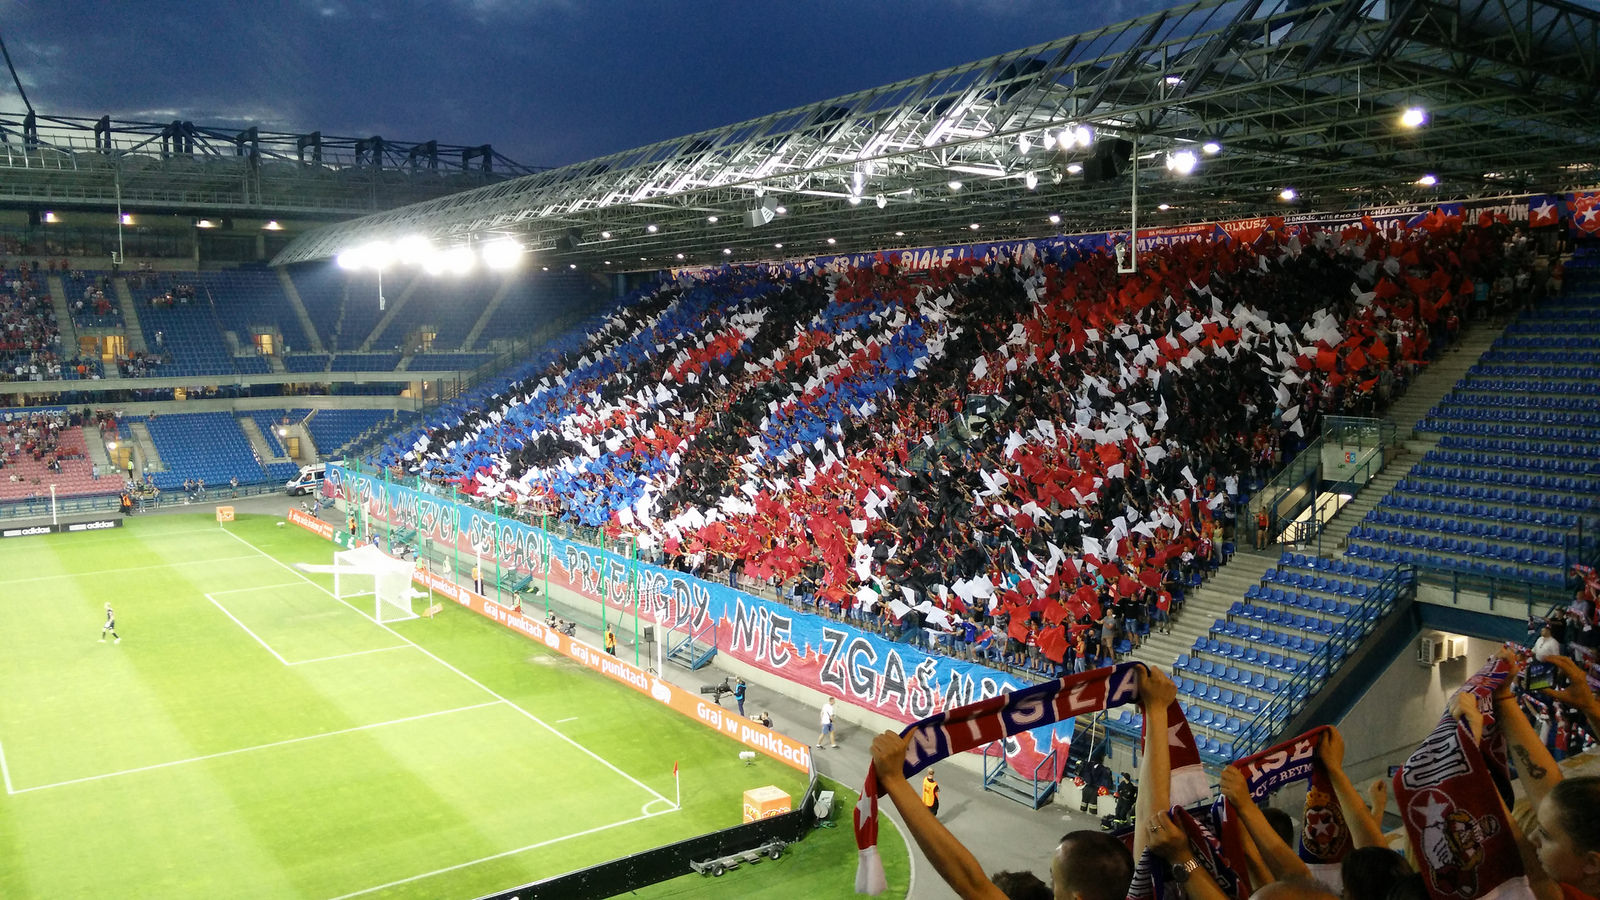 Krakow Groundhopping - Kurve mit Ultras